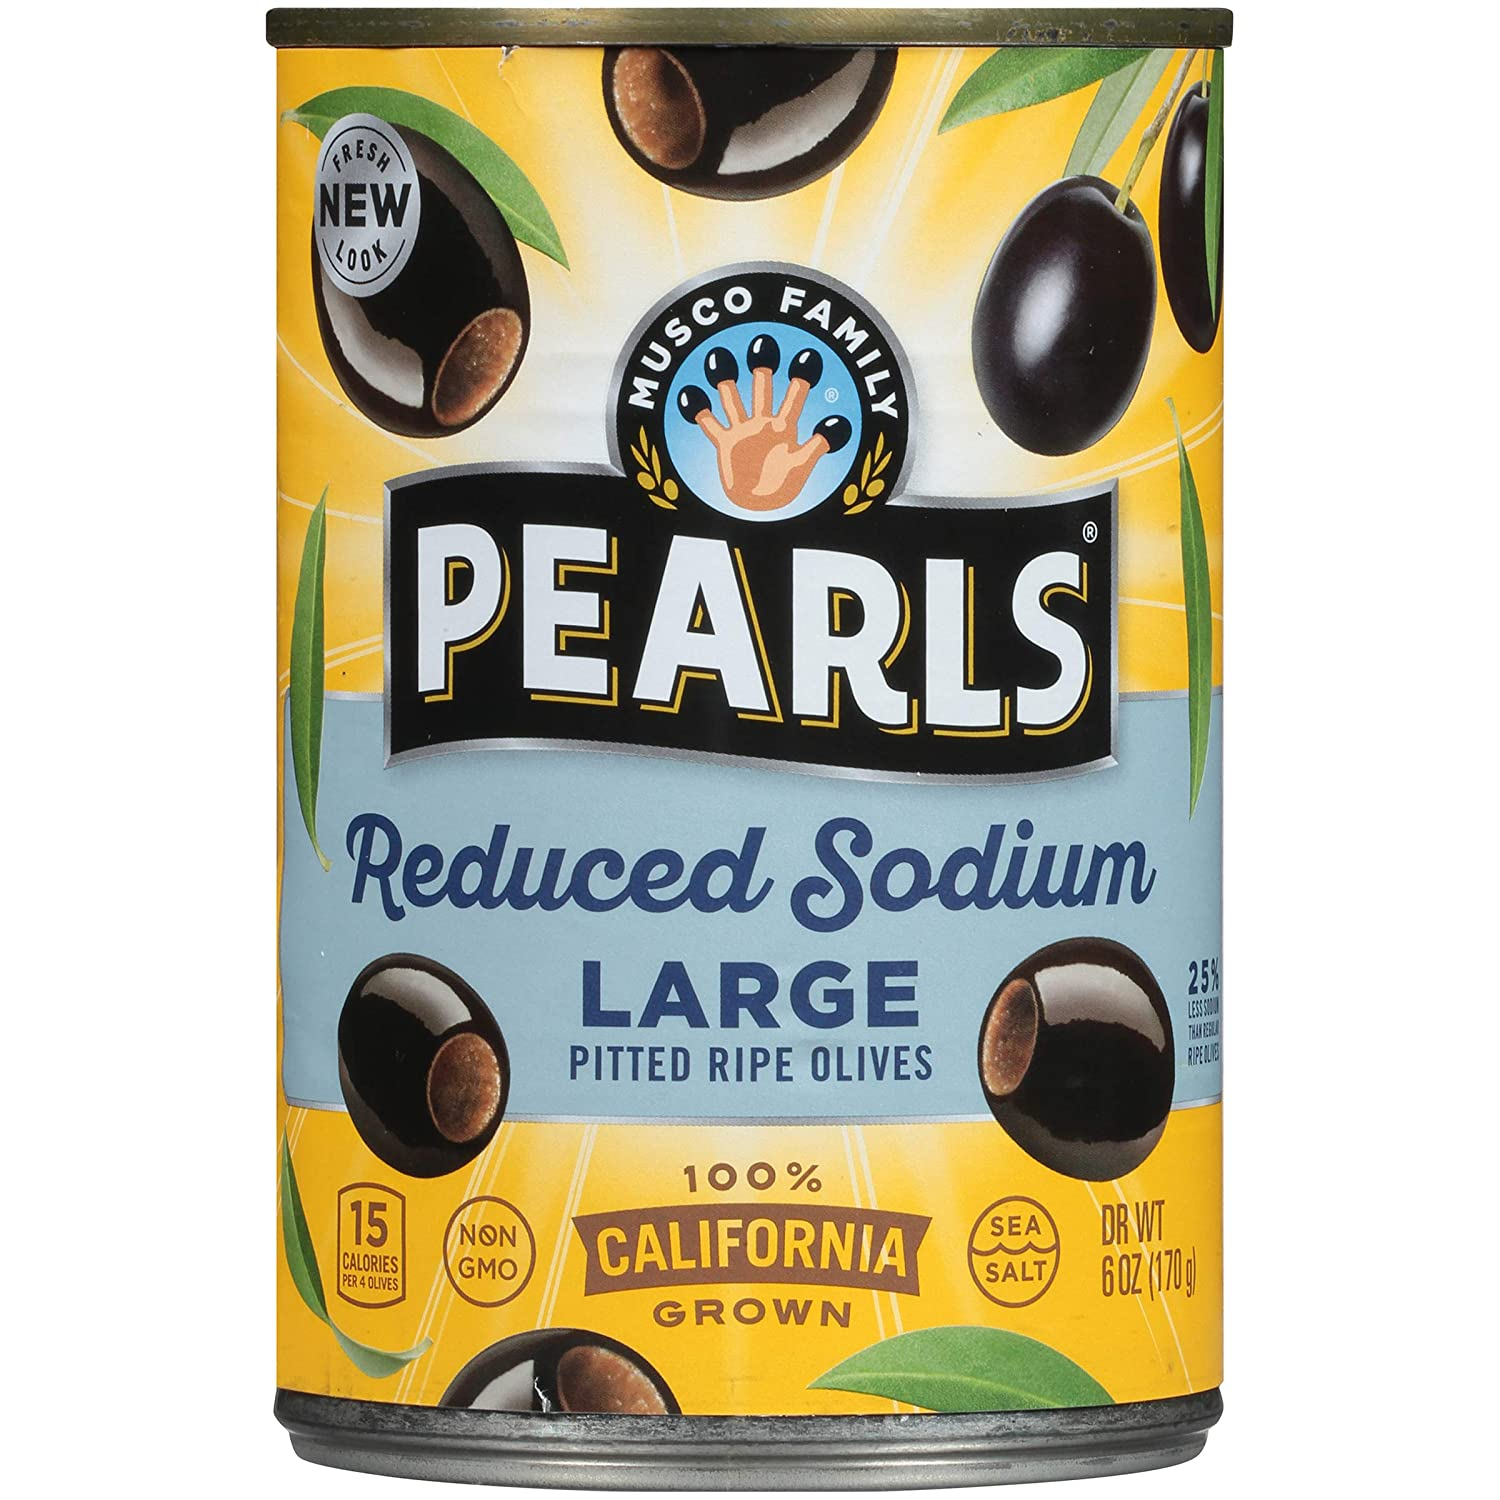 PEARLS Reduced-Sodium Ripe Black Unflavor Pitted Topics on TV Max 75% OFF Olives Large